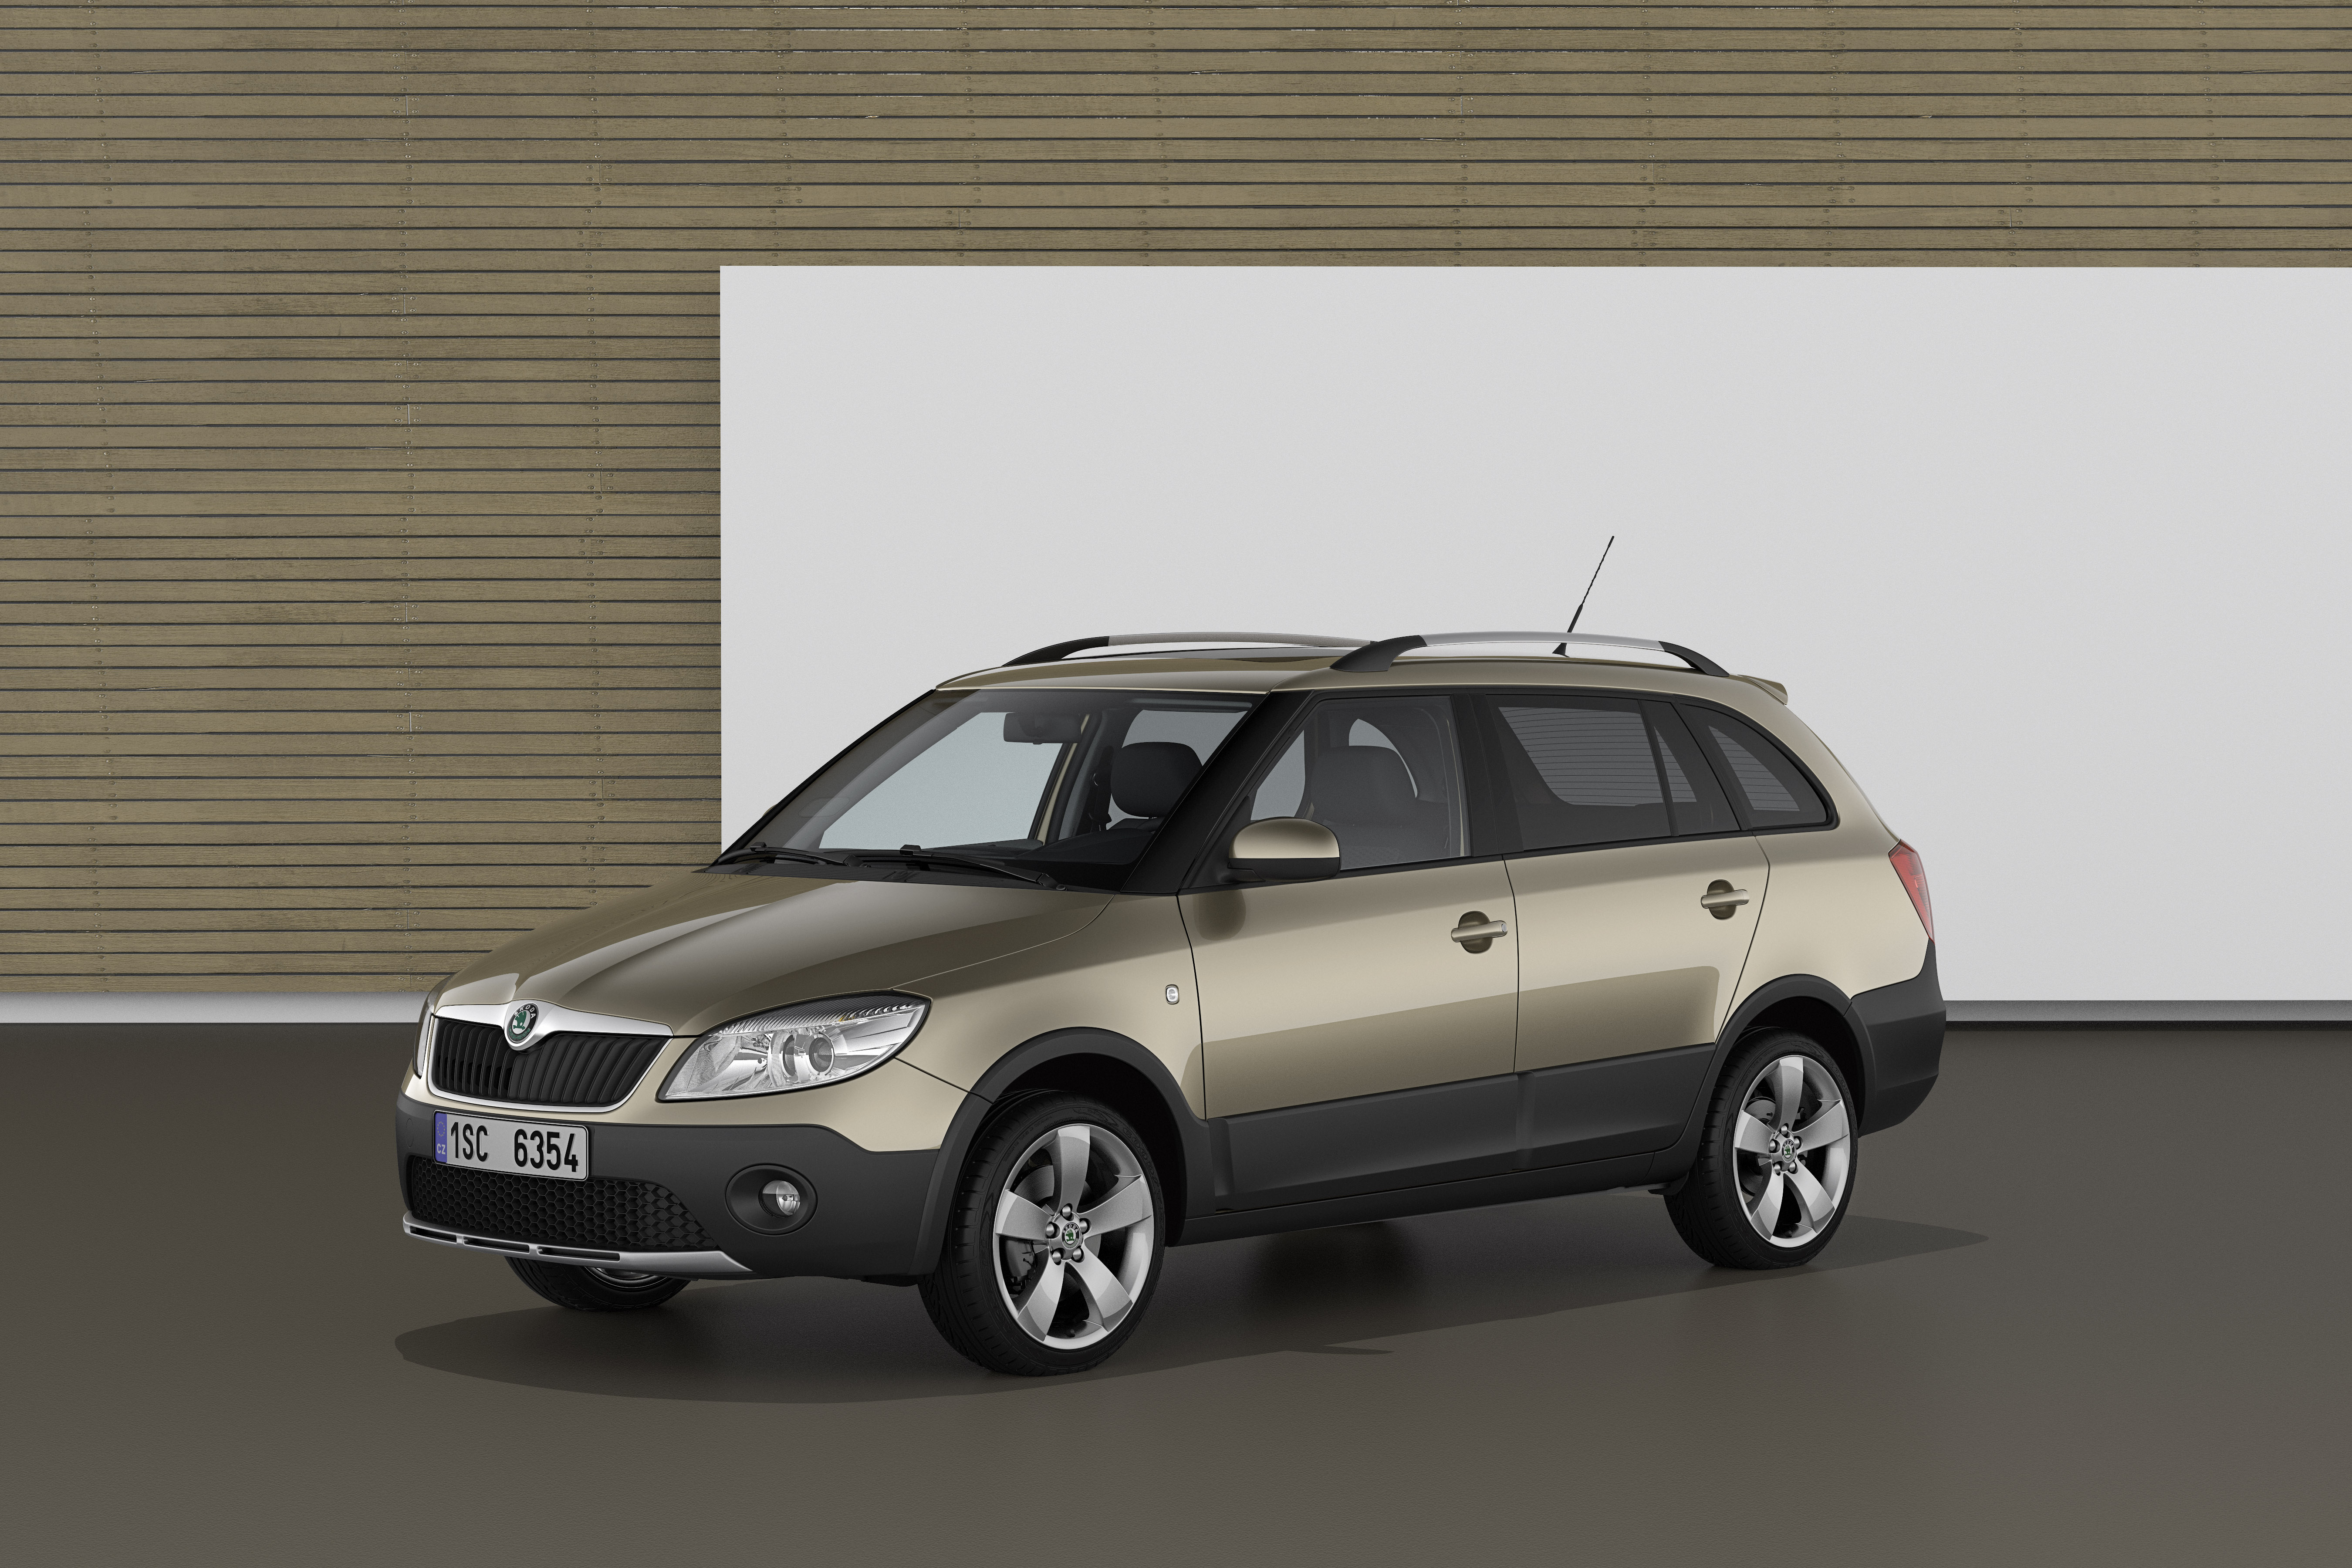 20 years of the SKODA FABIA COMBI: A real success story - Image 2